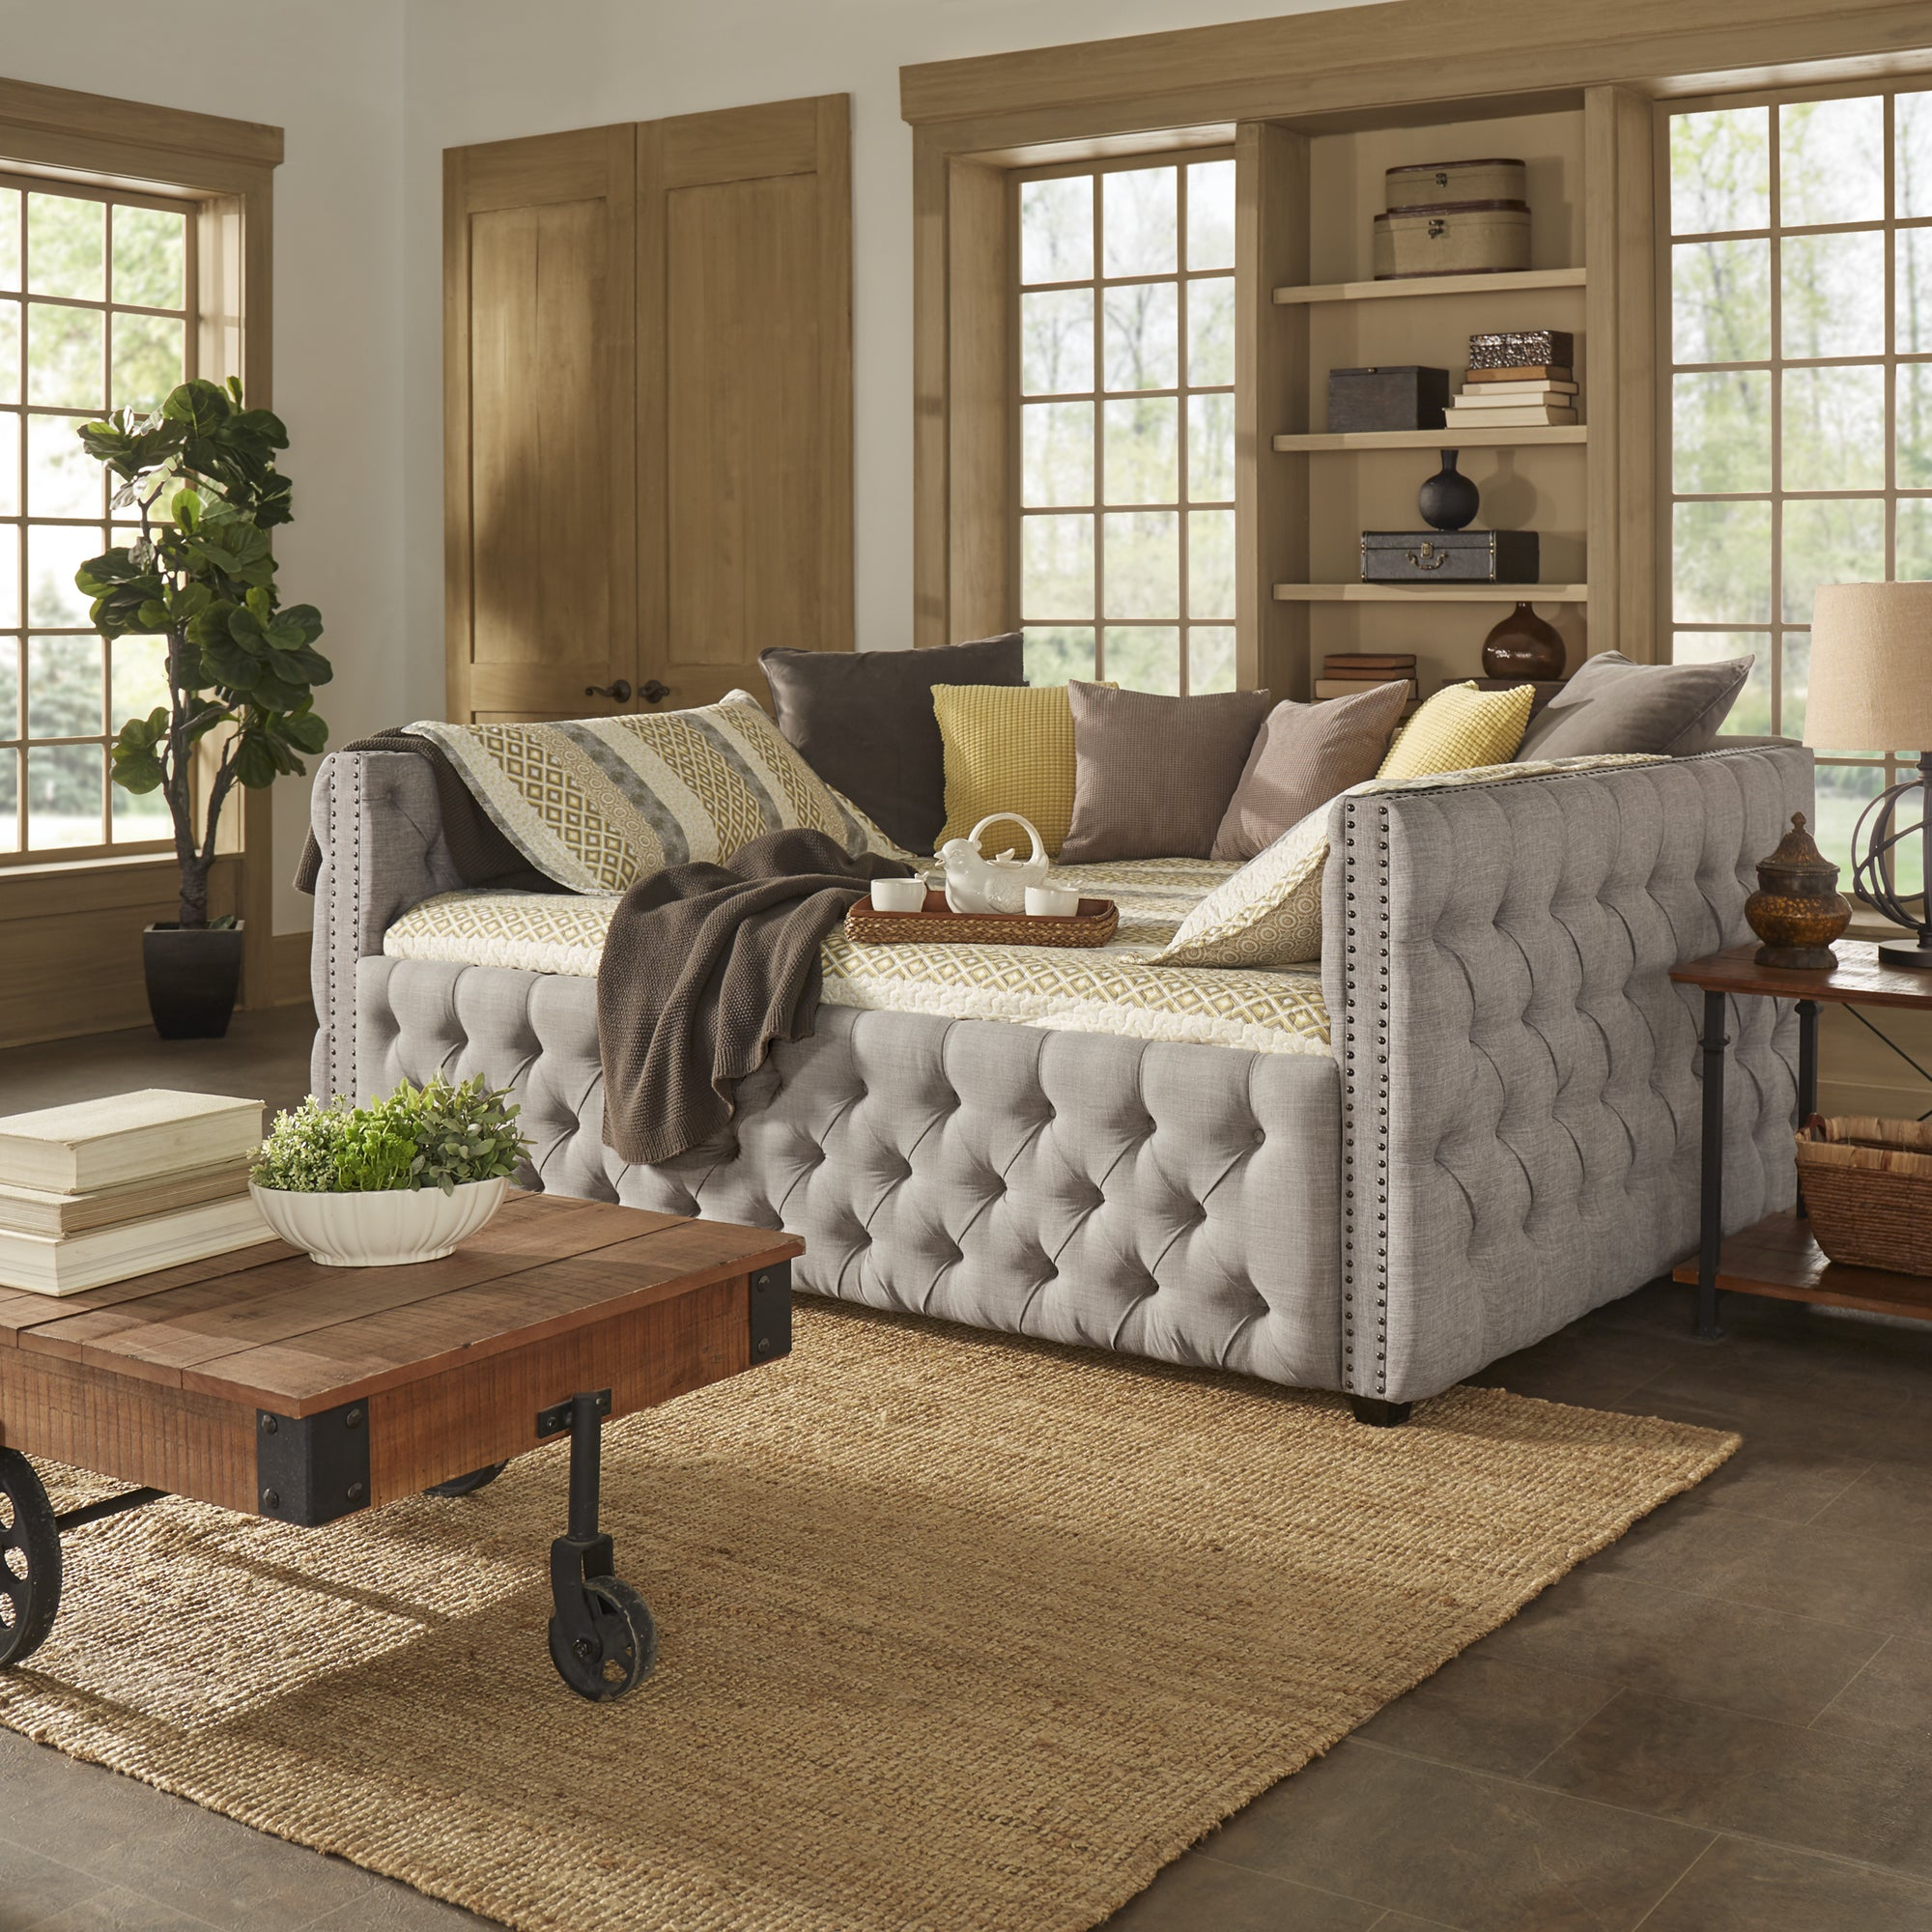 Day Bed.Knightsbridge Queen Size Tufted Nailhead Chesterfield Daybed And Trundle By Inspire Q Artisan